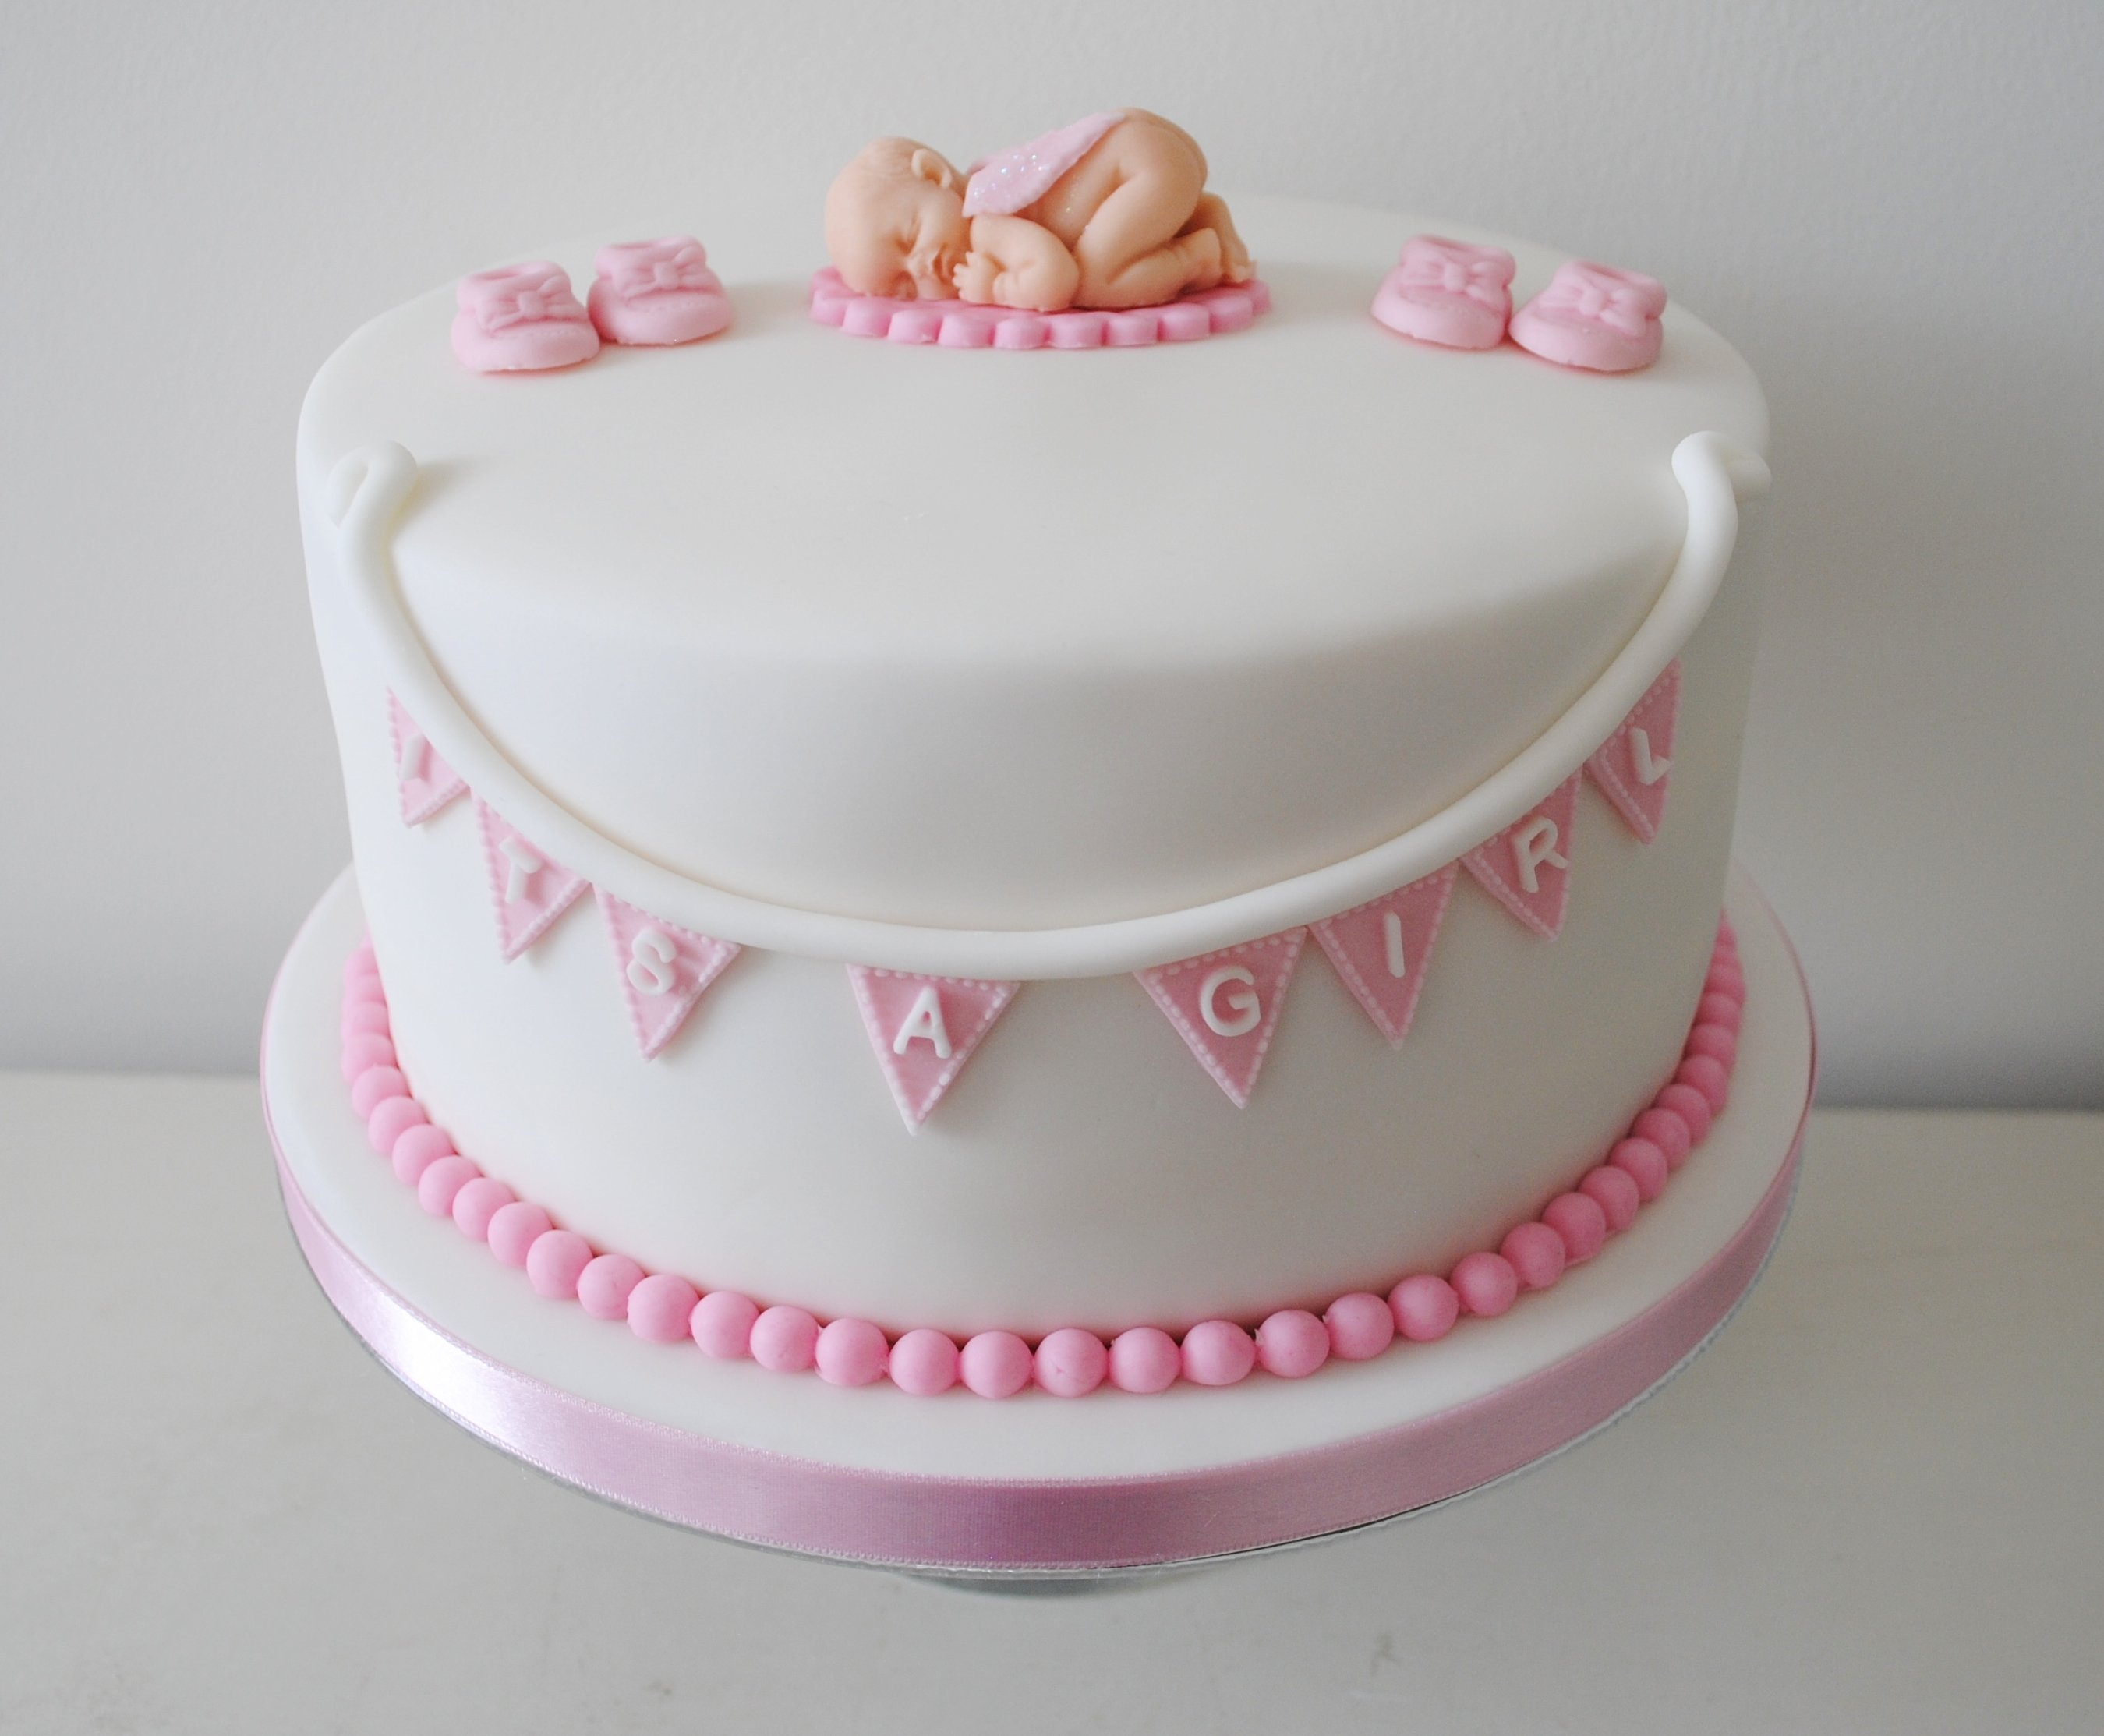 10 Beautiful Girl Baby Shower Cake Ideas girl baby shower cakes you can look baby shower cream cakes you can